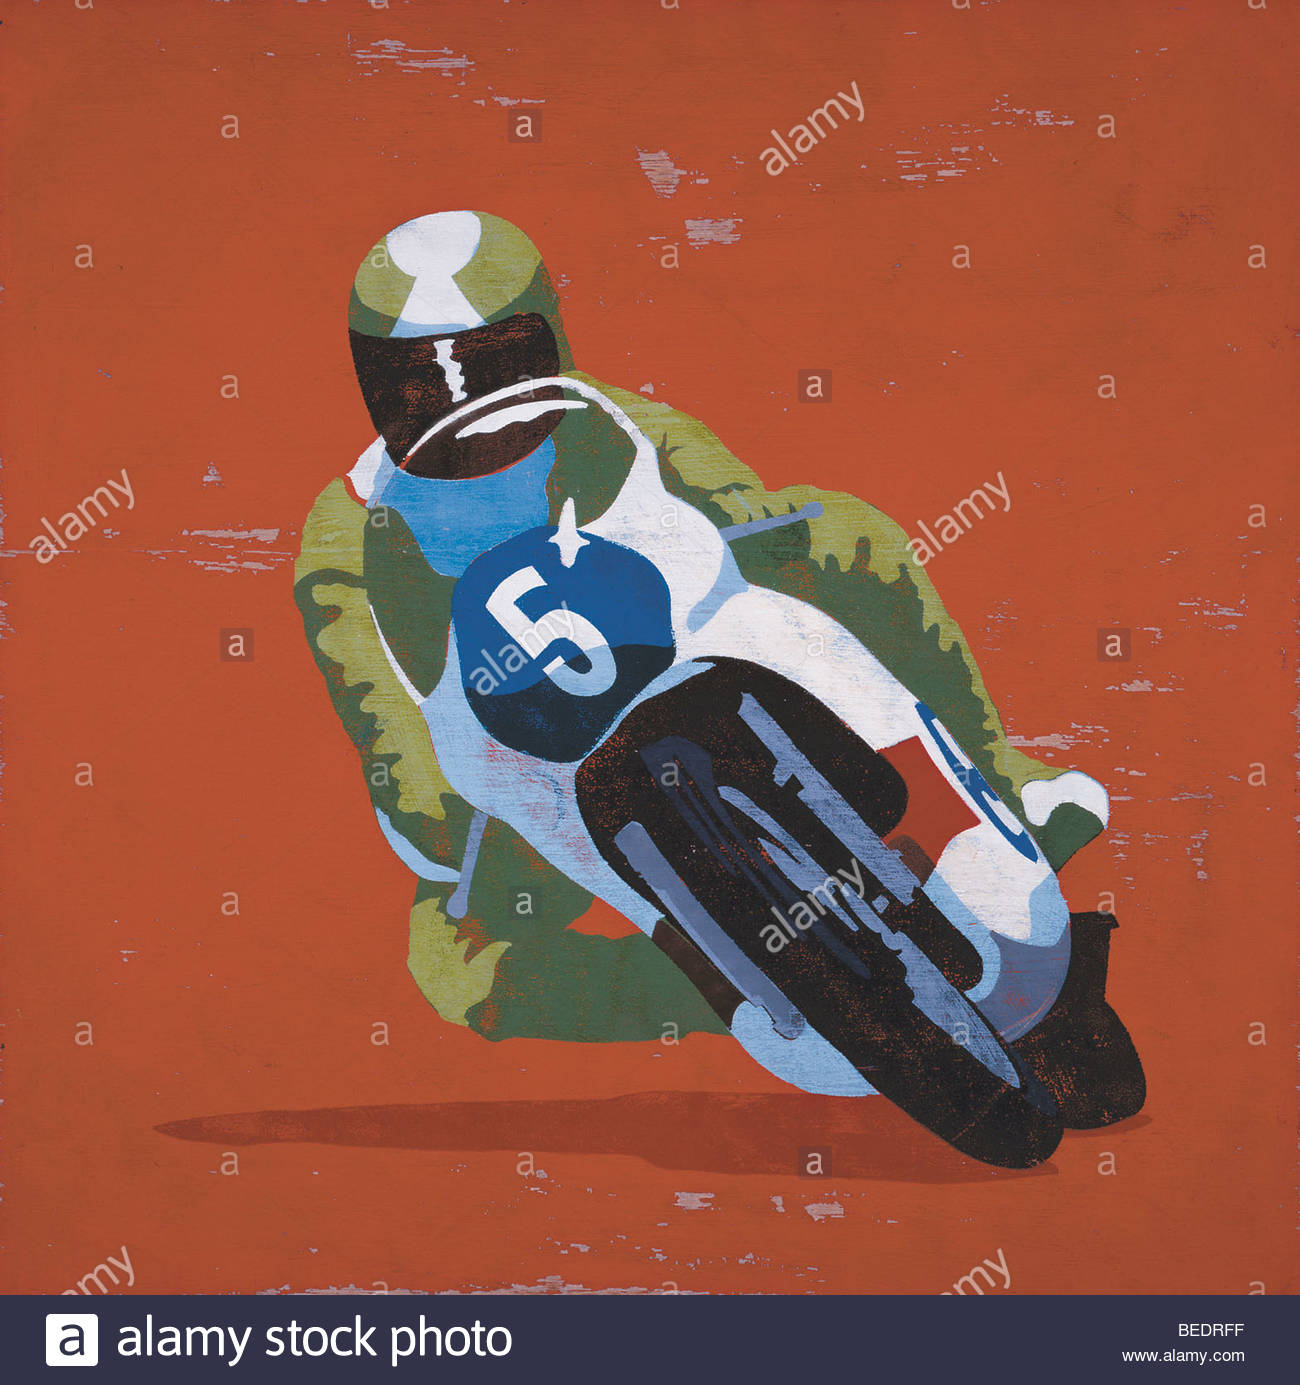 Cavalier Professionnel sur moto de course Photo Stock